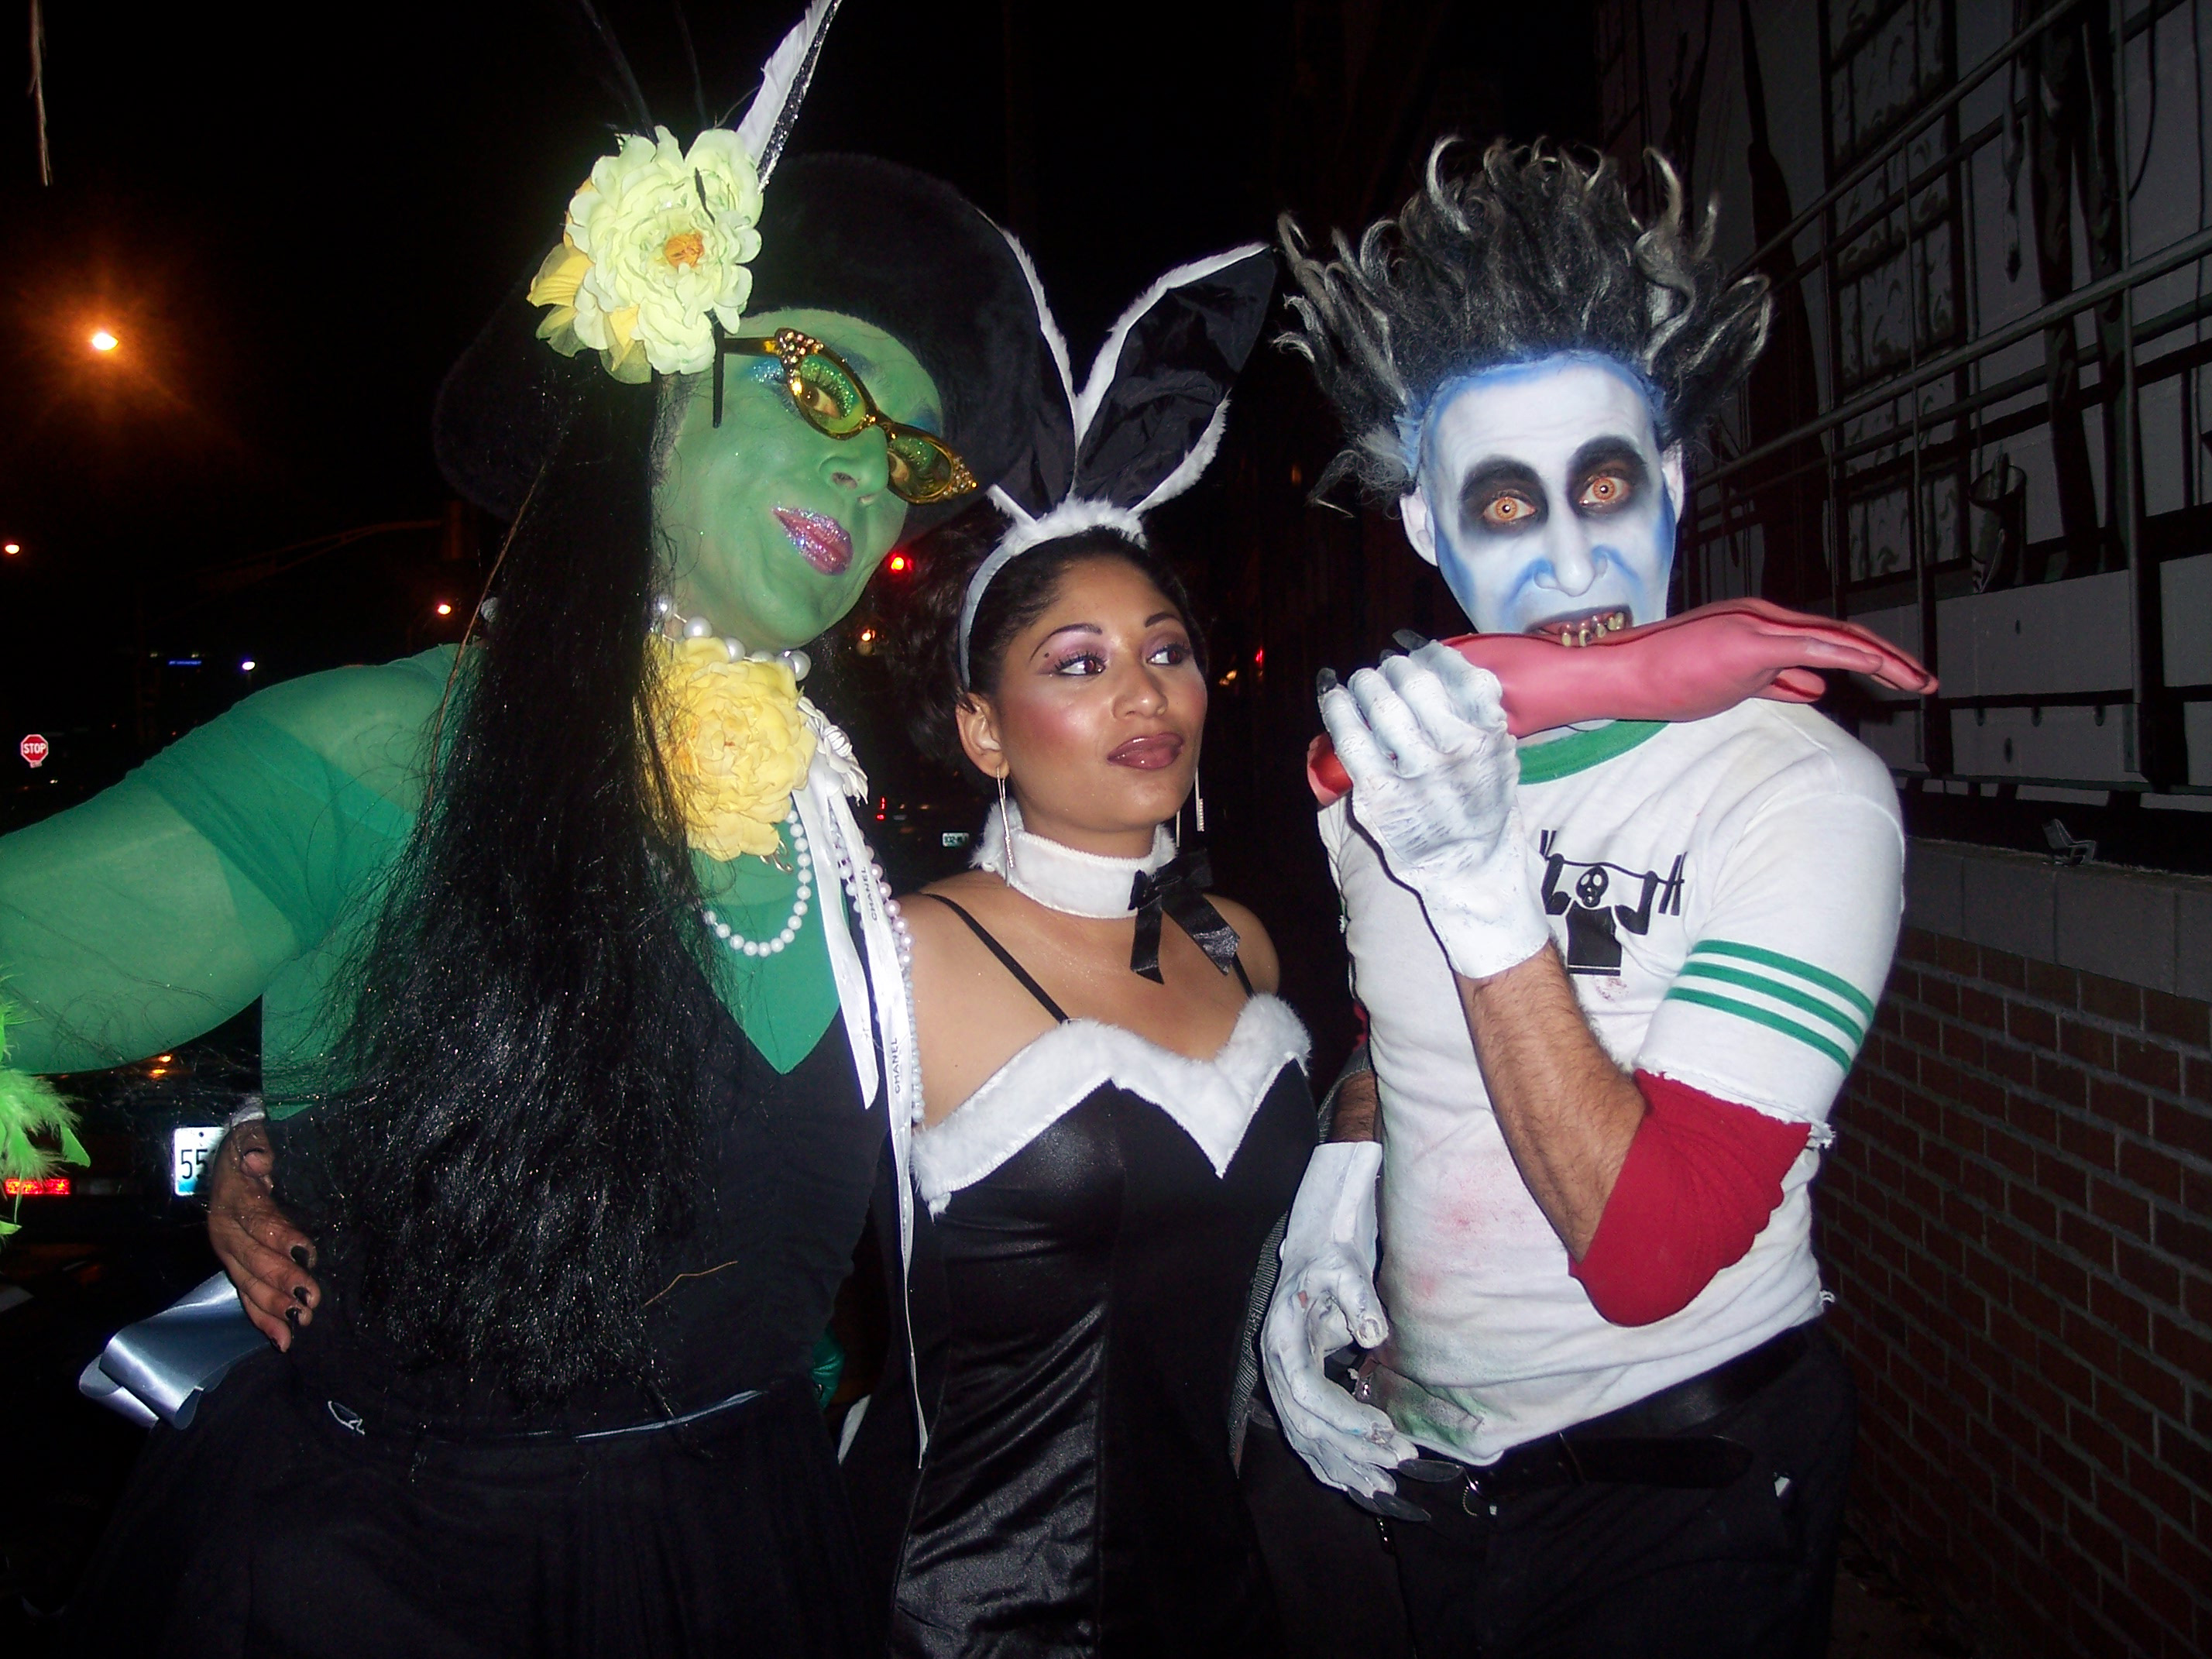 file:halloween - 2004 elphaba bunny and aberzombie - wikimedia